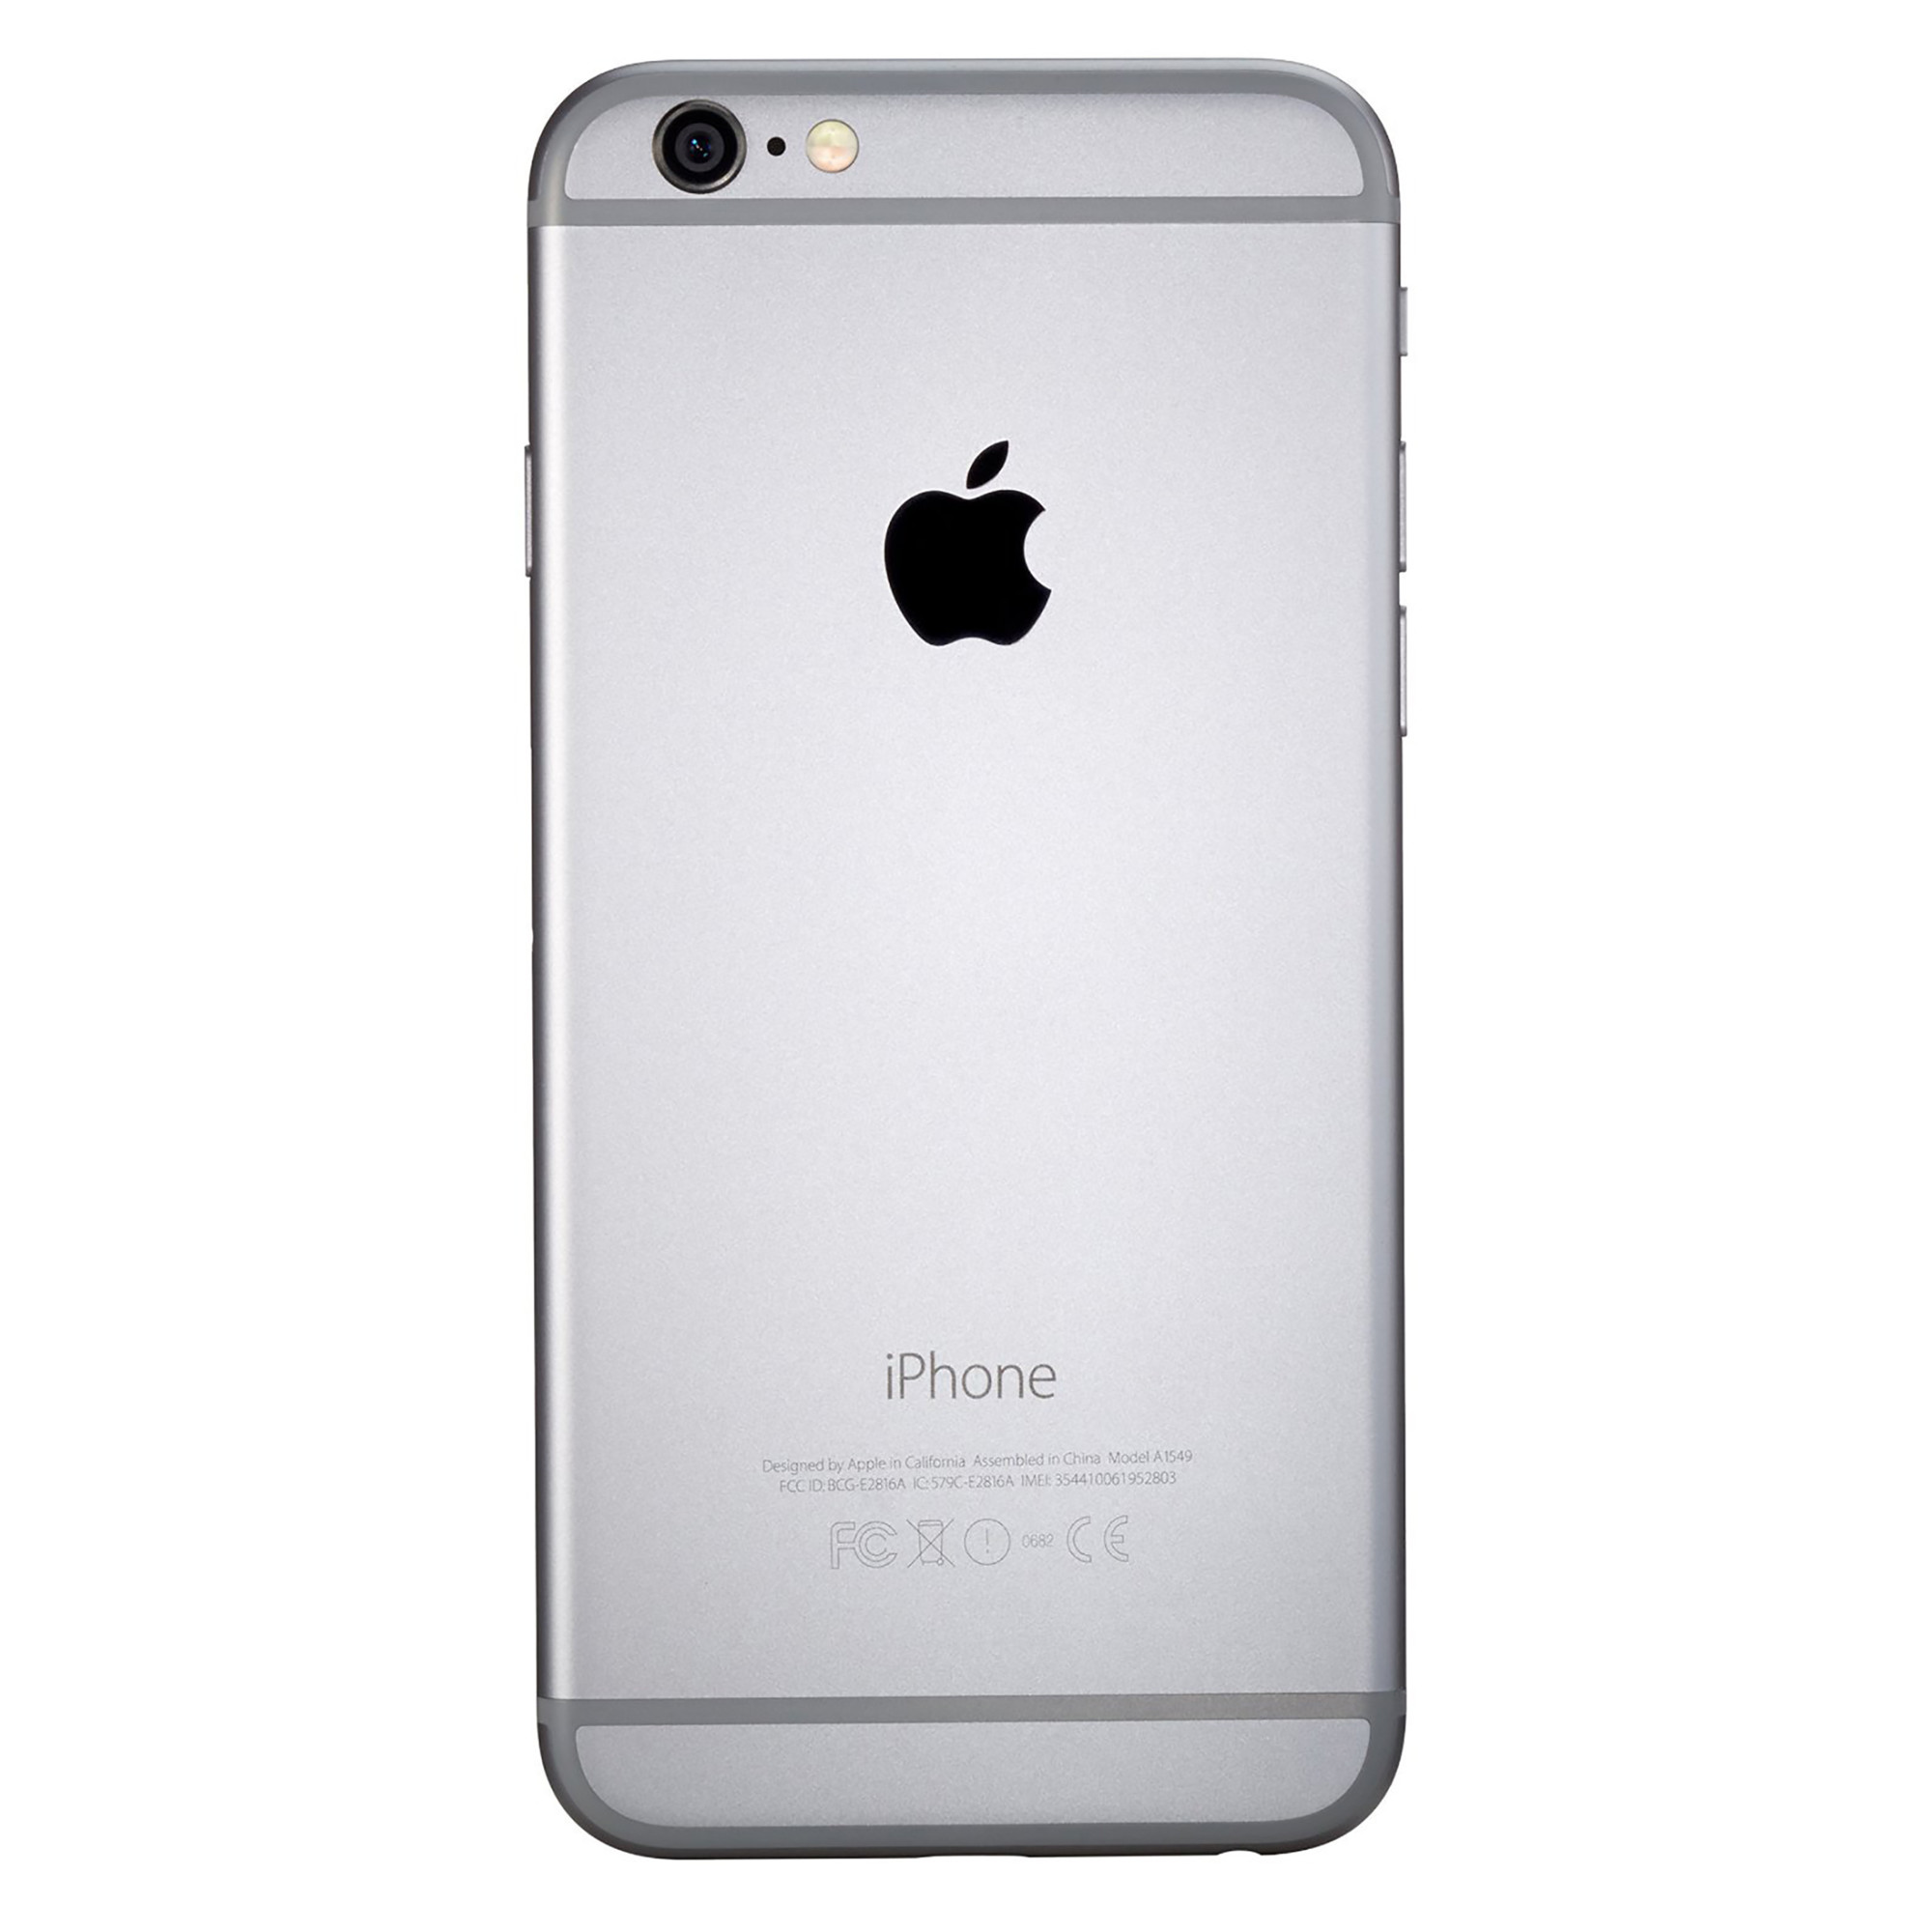 iphone 4 camera megapixels apple iphone 6 64gb at amp t locked 4g lte phone w 8 5996